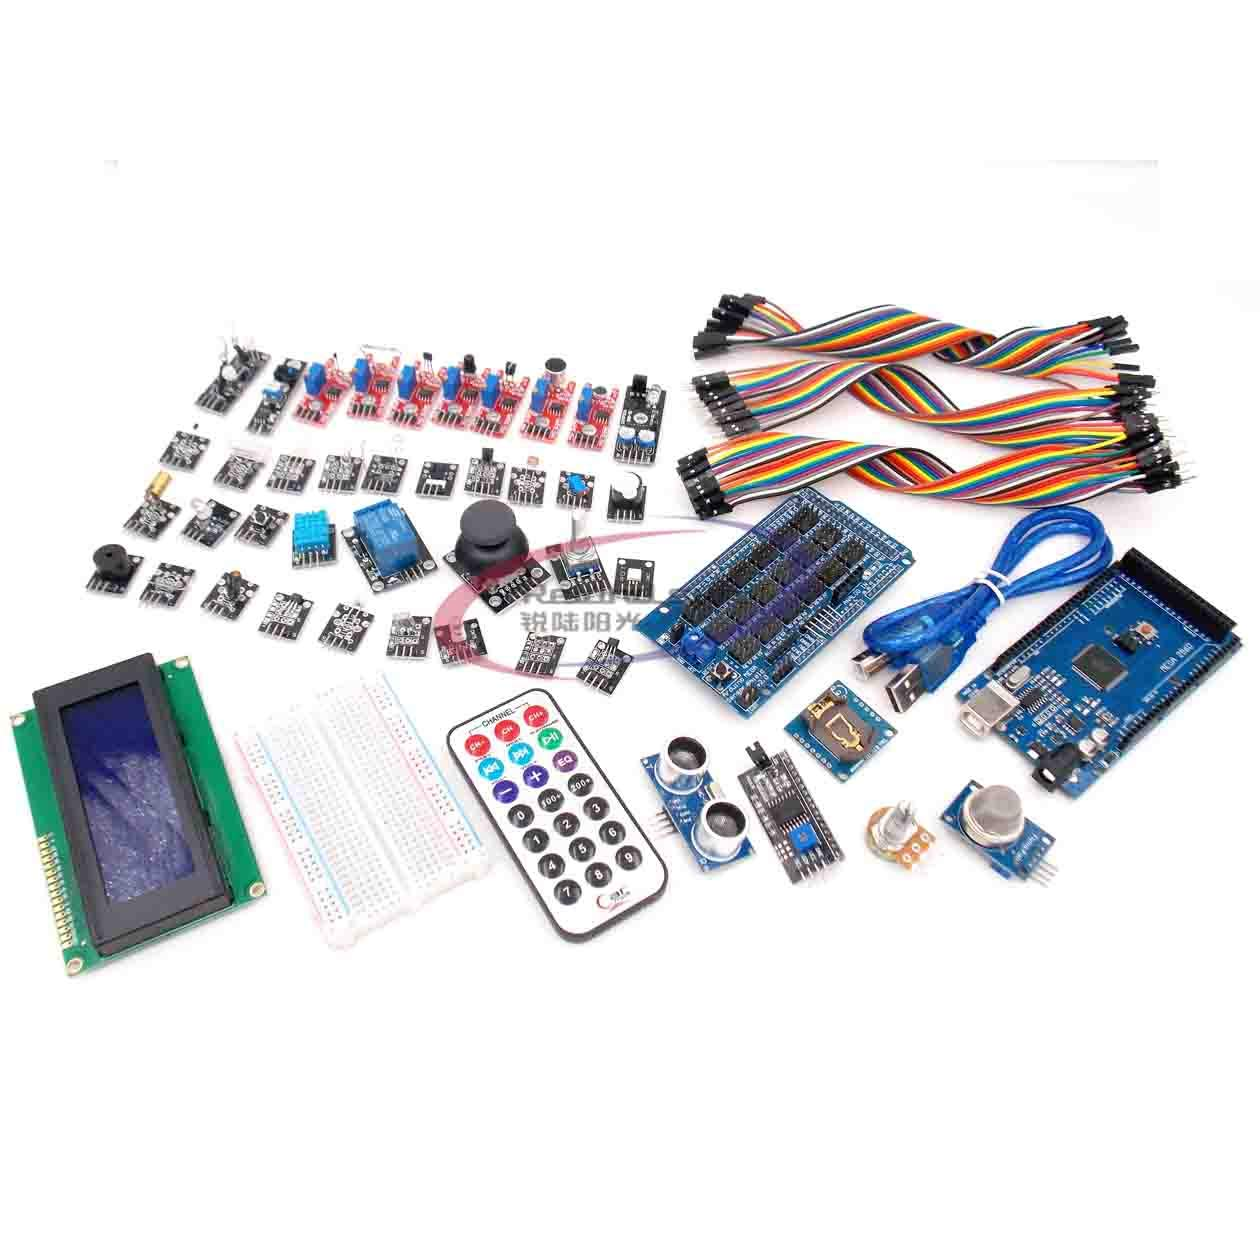 Bluetooth Module NRF24L01 etc Most Complete Ultimate Starter Kit 51 in 1 Sensors Modules DHT11 1602 Display Ultrasonic Sensor with Lessons CD Compatible with Arduino IDE R3 board MEGA2560 Nano